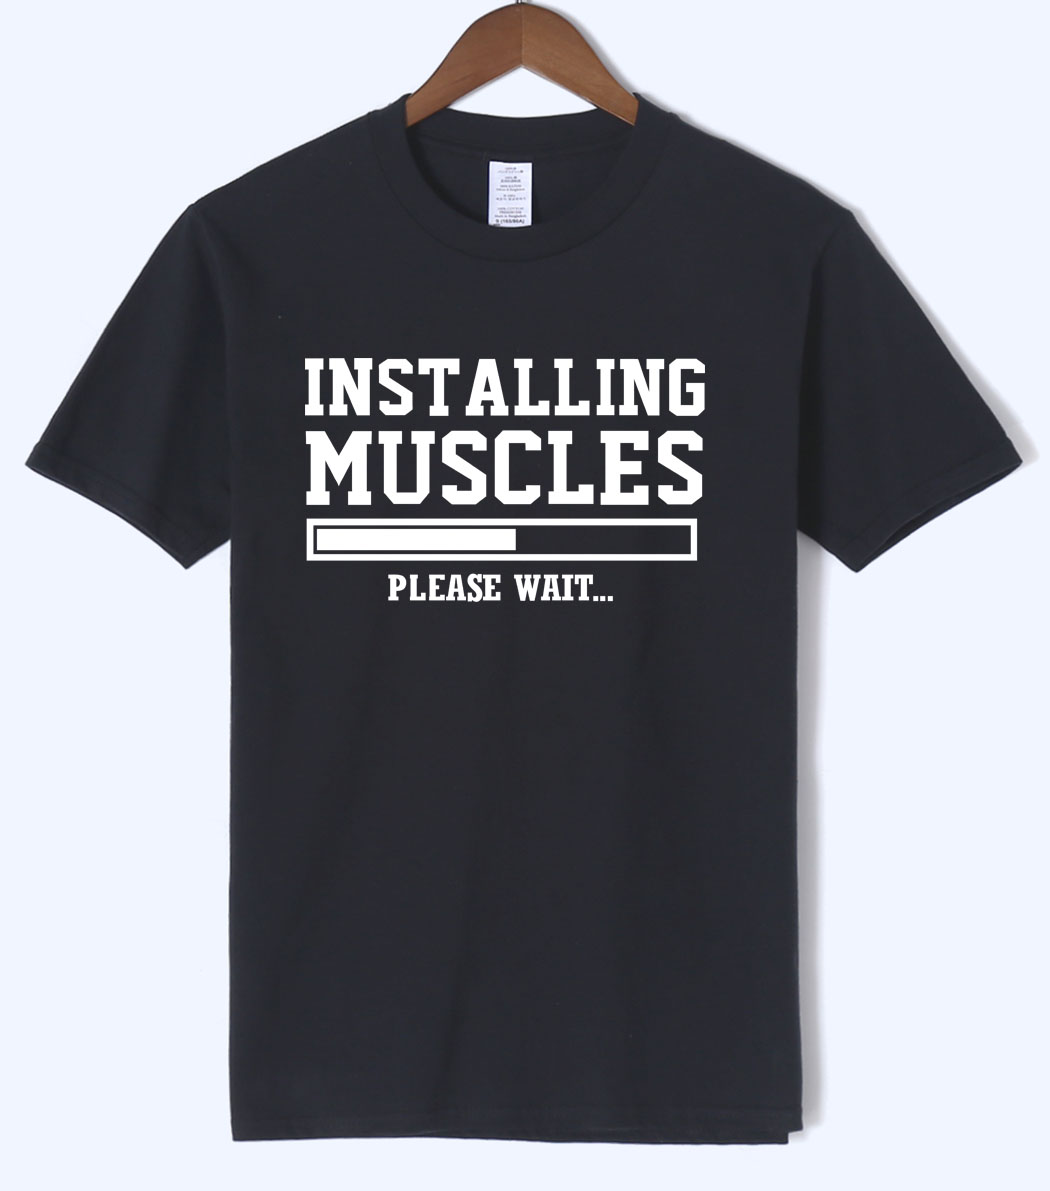 Men's T-shirts summer 2019 printed INSTALLING MUSCLES funny T-shirt fashion brand clothing crossfit t shirt men homme fitness